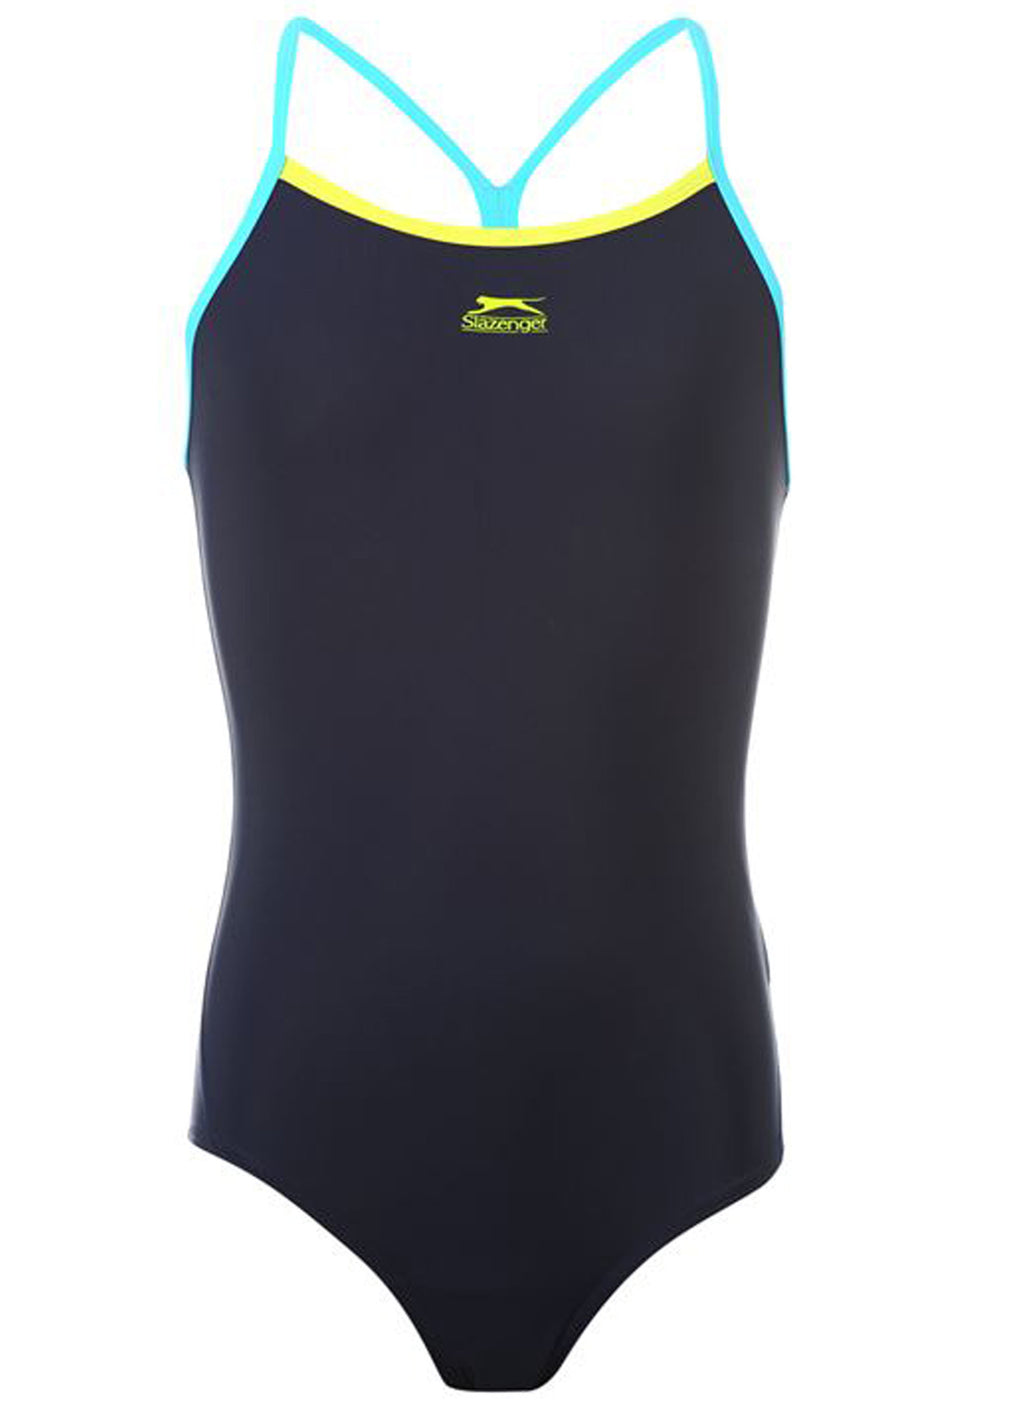 Slazenger Thinstrap Swimsuit (7-8yrs Only)